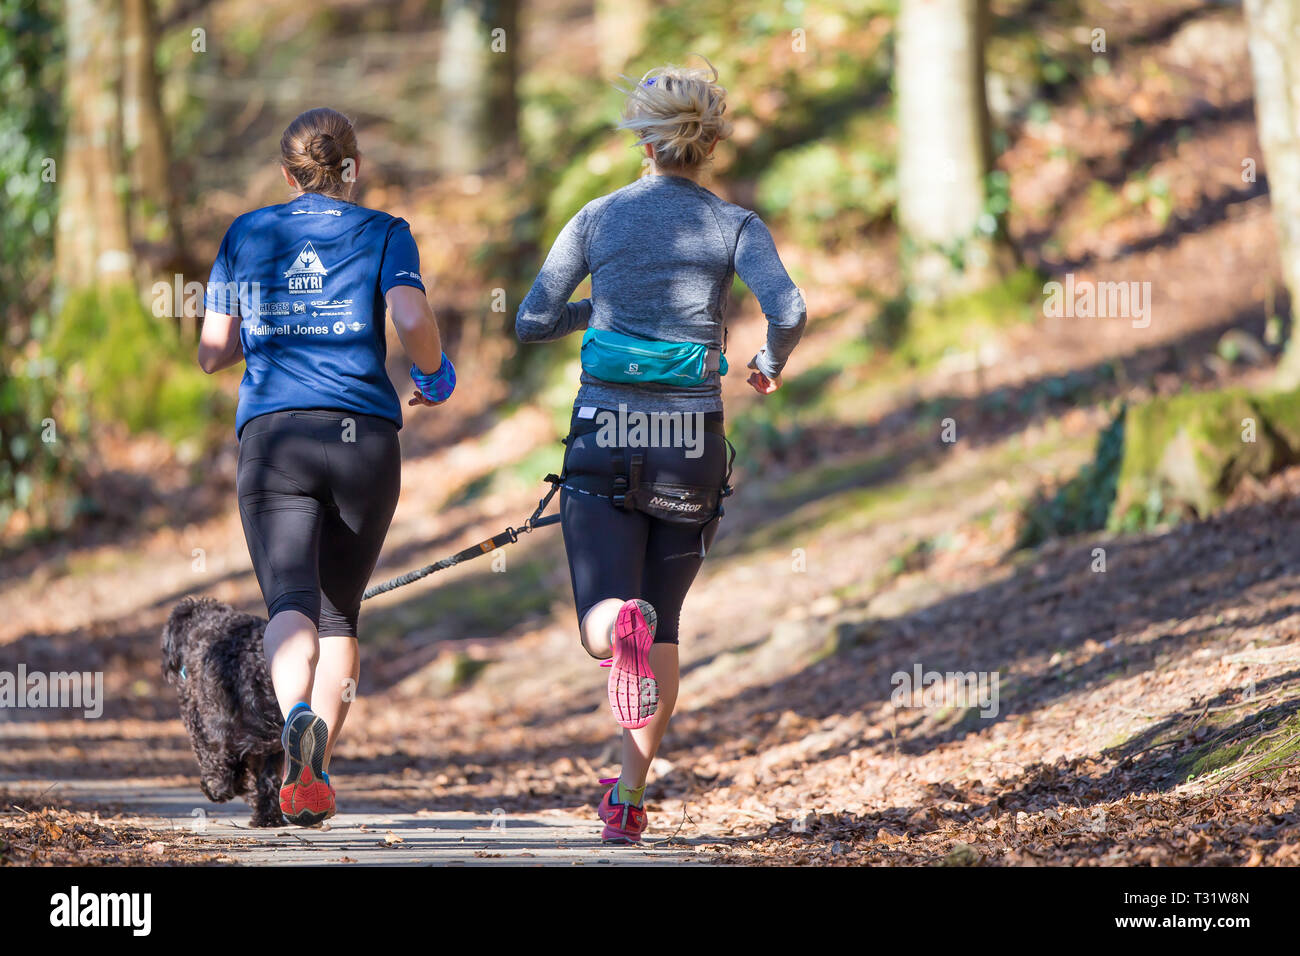 Rear view of two female joggers running through spring woodland in dappled sunlight & shadows: one wearing hands-free lead on waist exercising the dog. - Stock Image